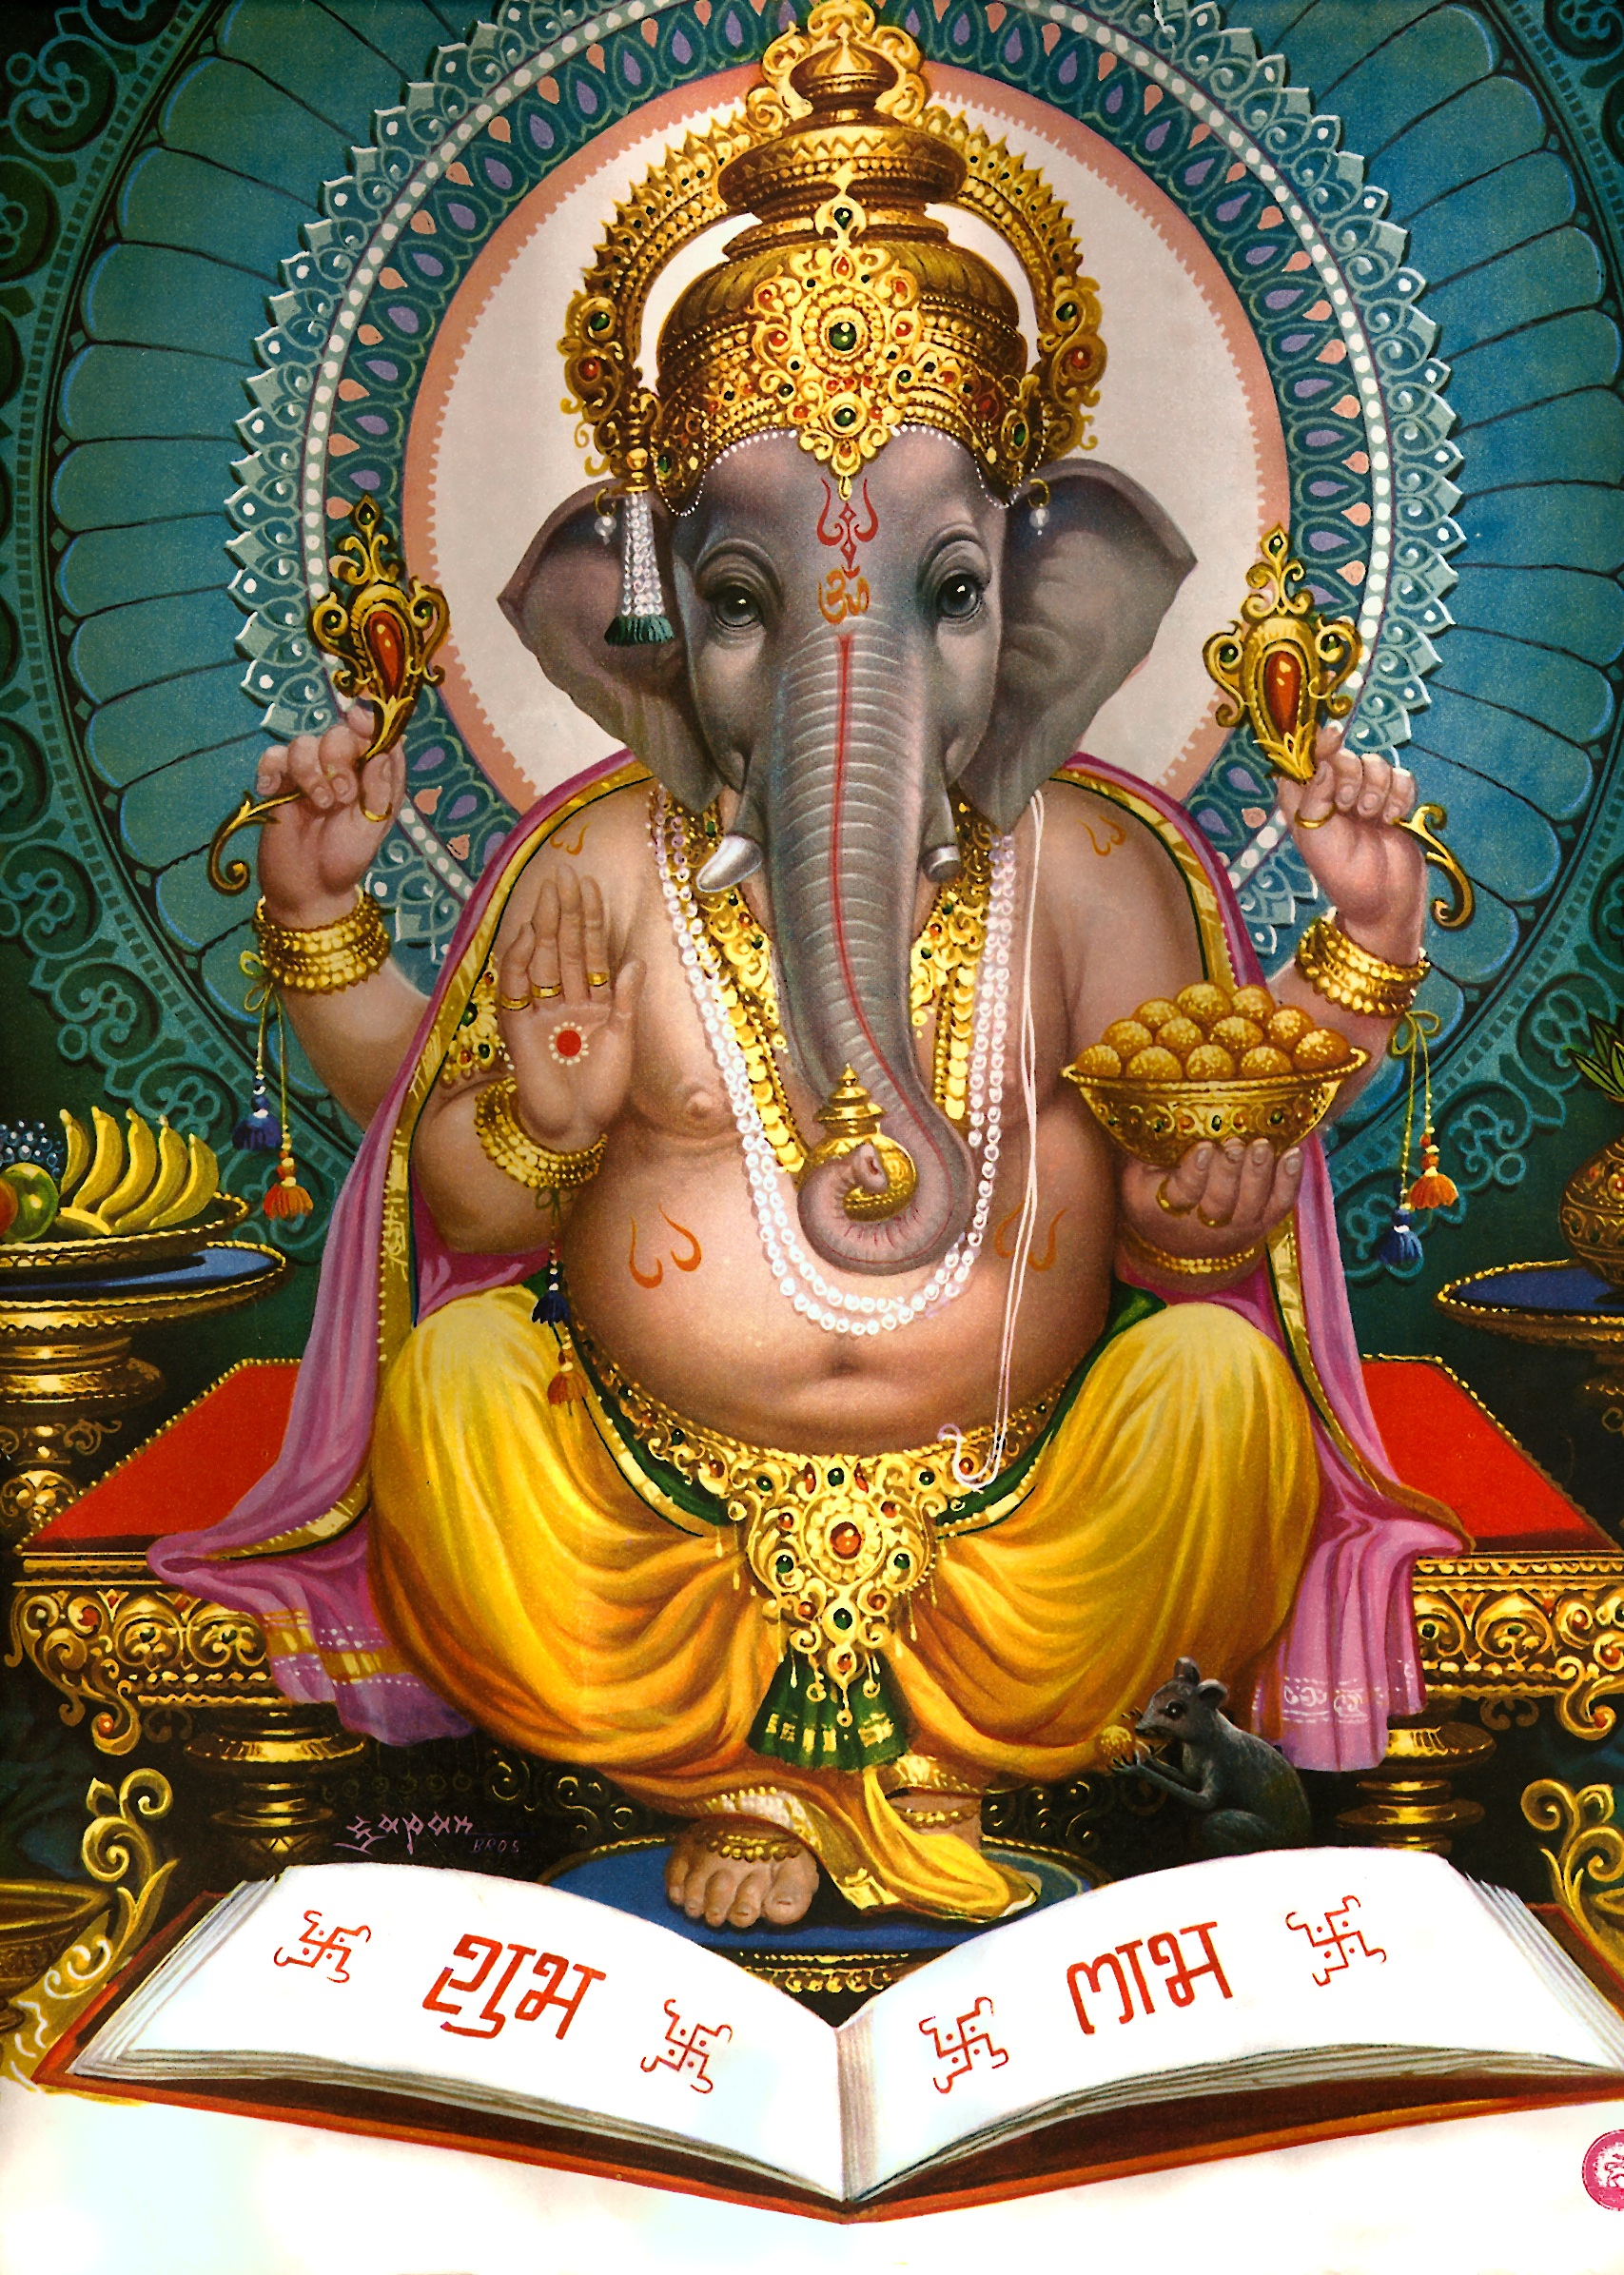 hindus celebrate the festival of ganesh chaturti where lord ganesh